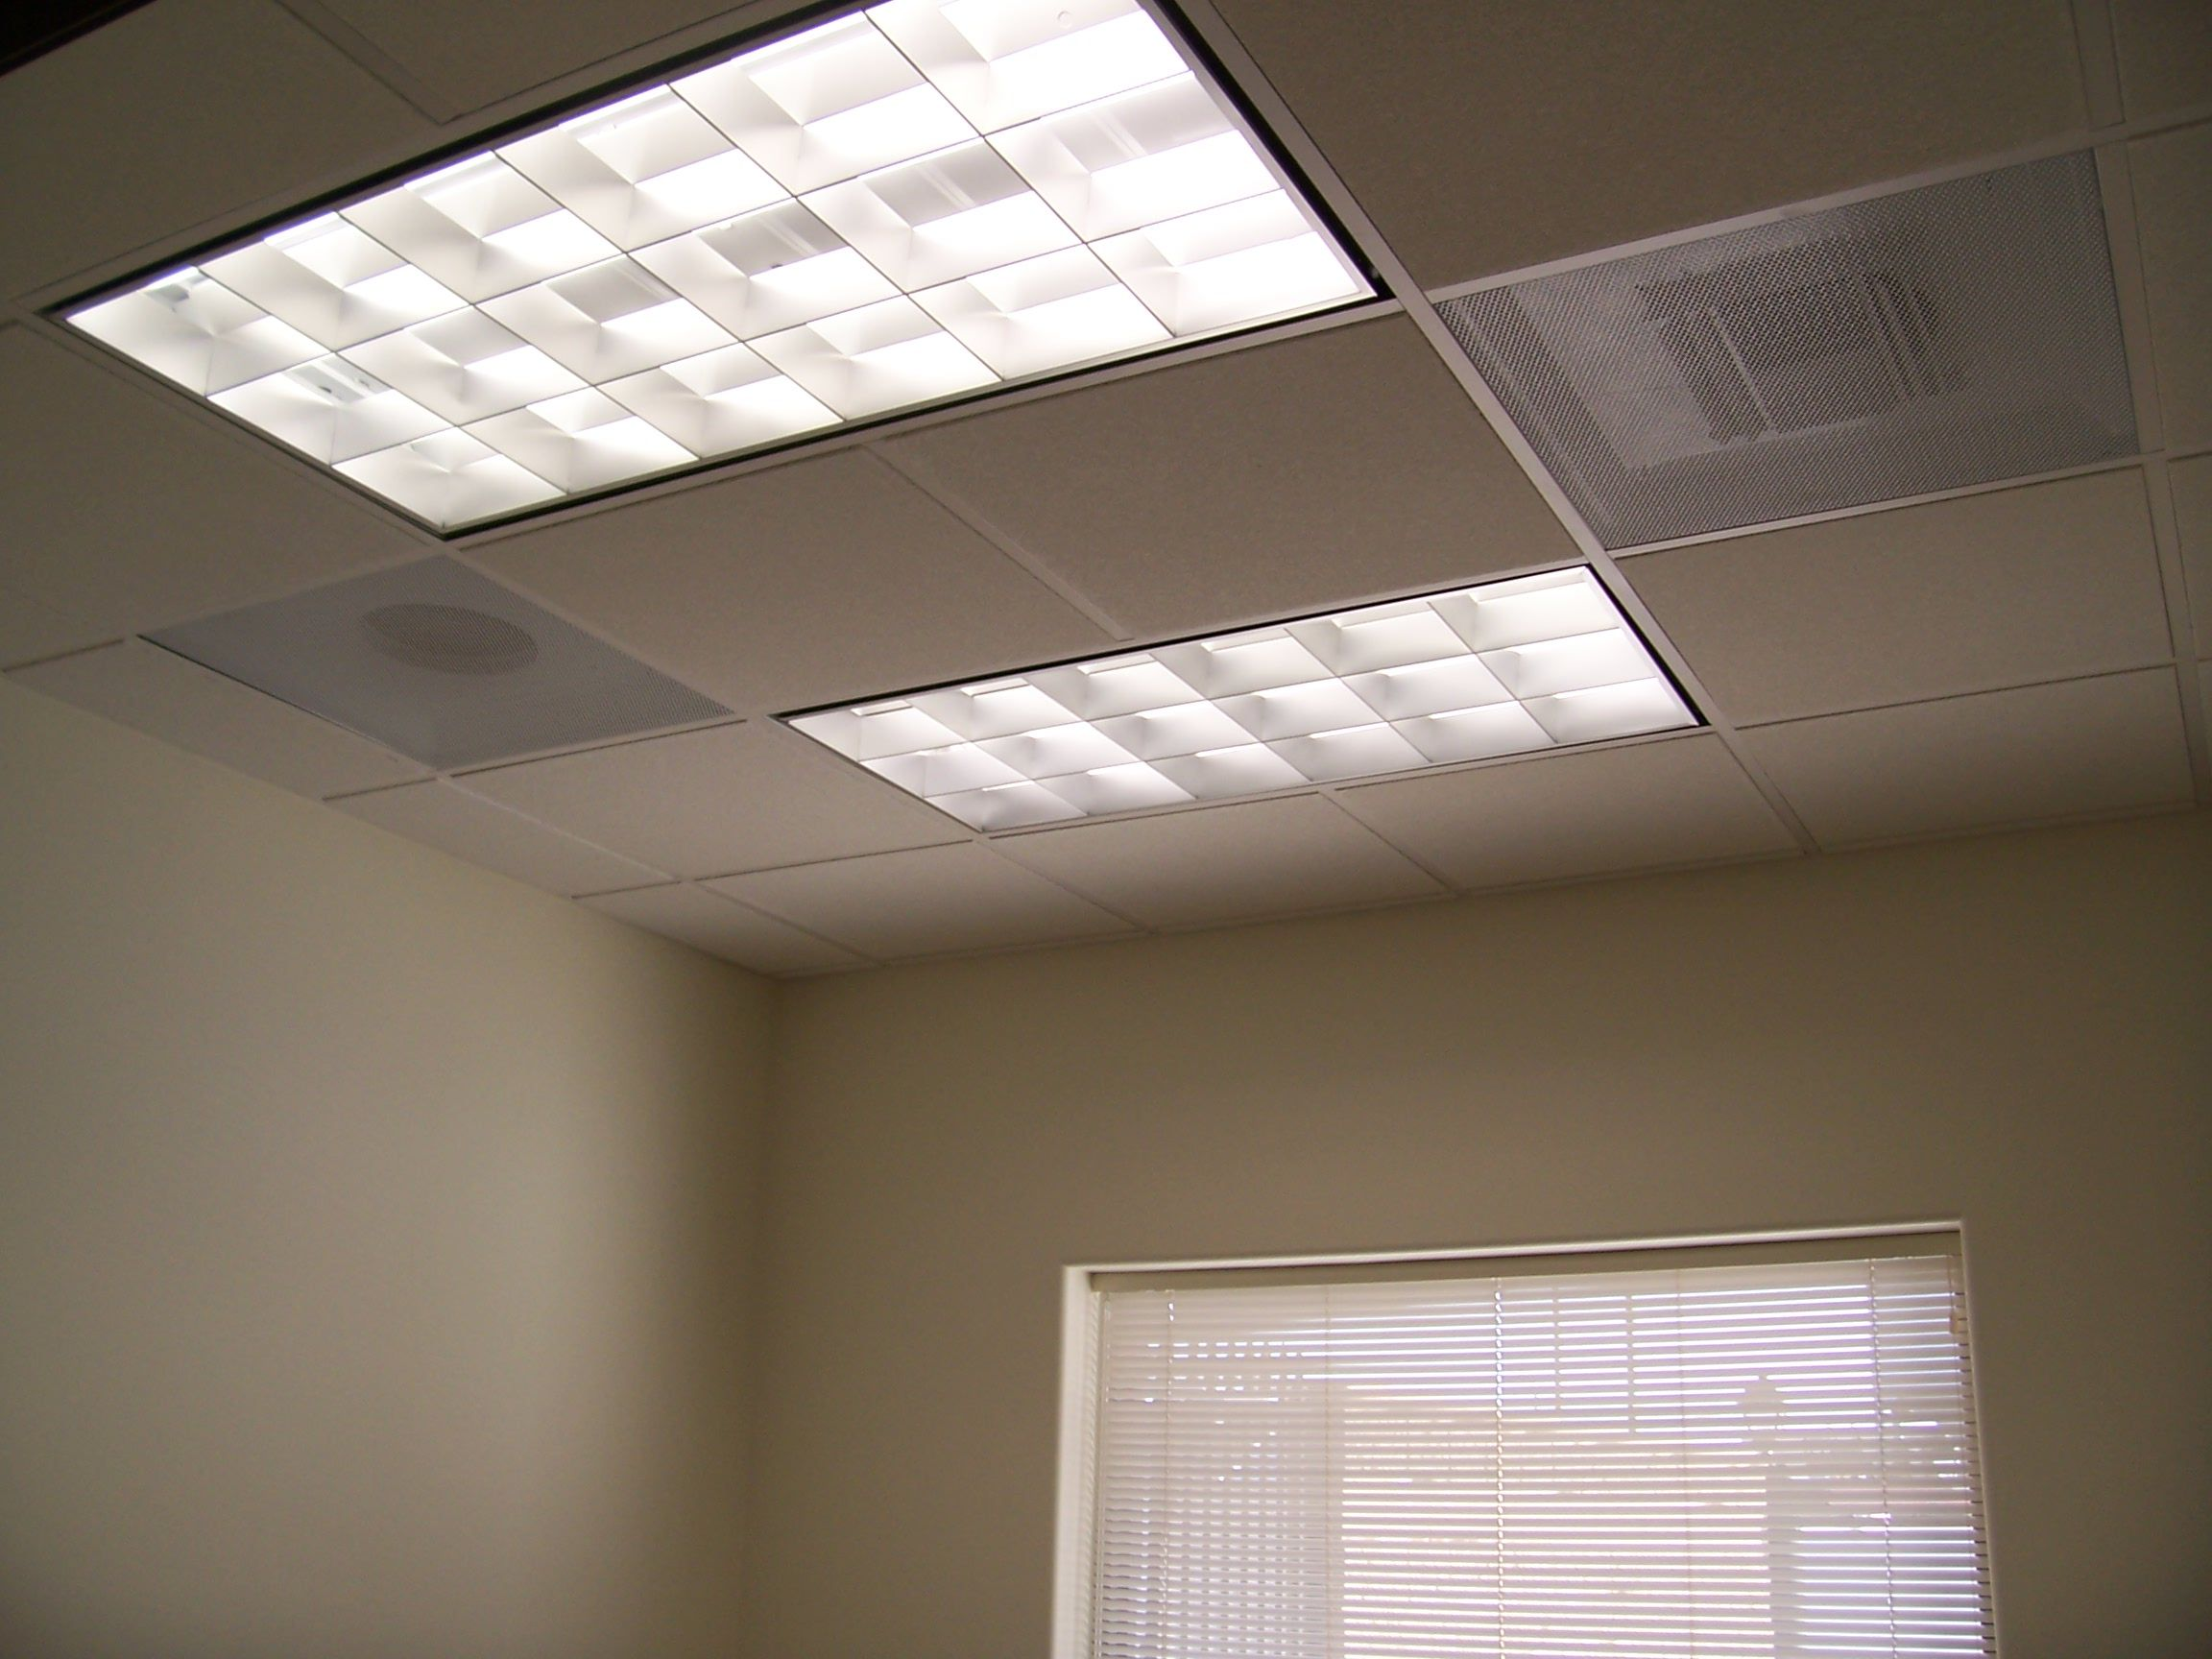 Fluorescent light fixtures cities for changing your light explore fluorescent light fixtures and more arubaitofo Image collections